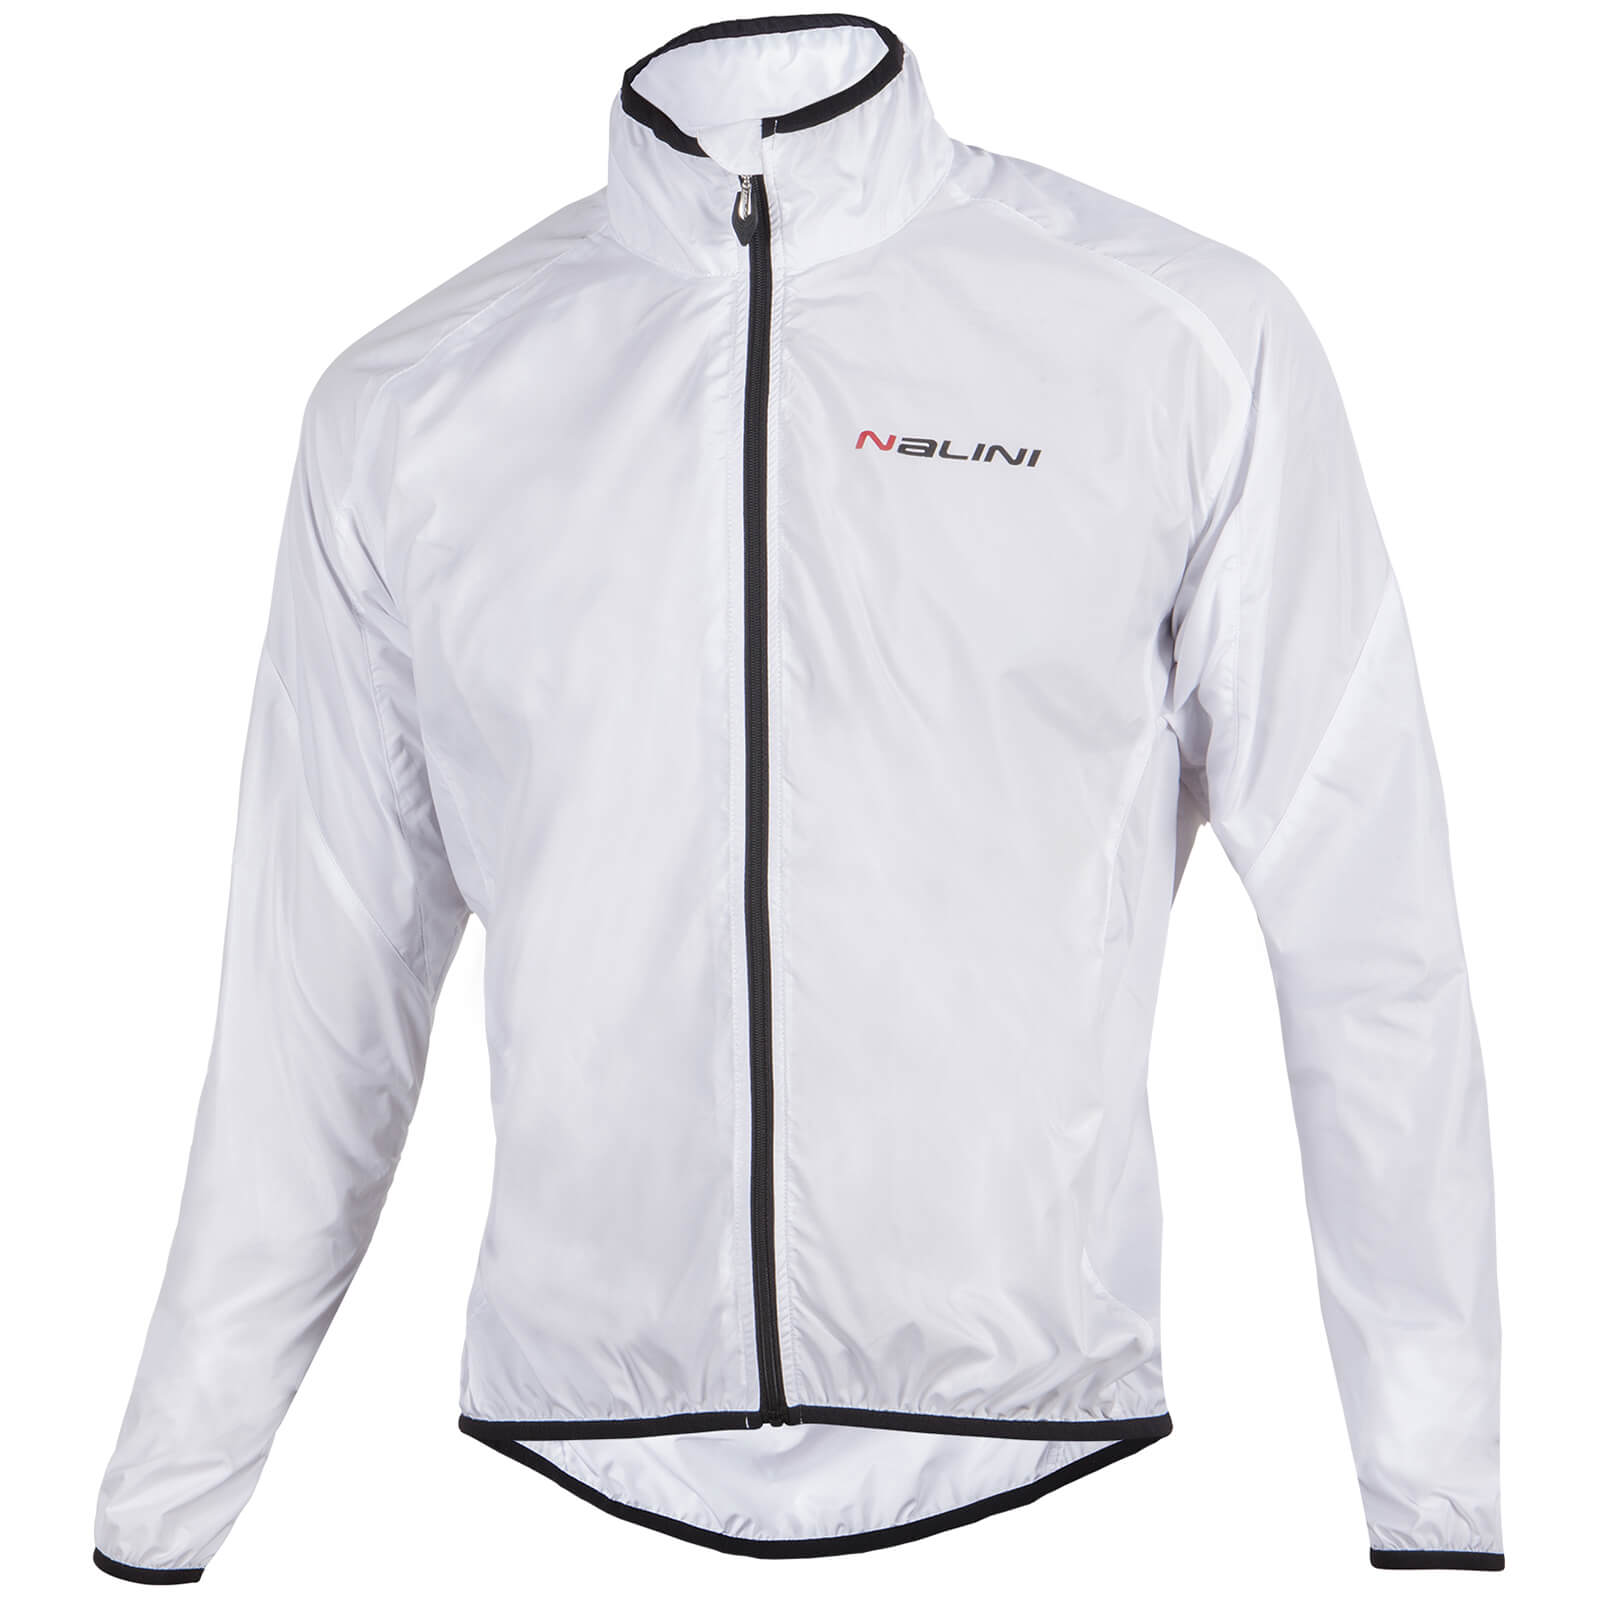 Nalini Aria Jacket - White